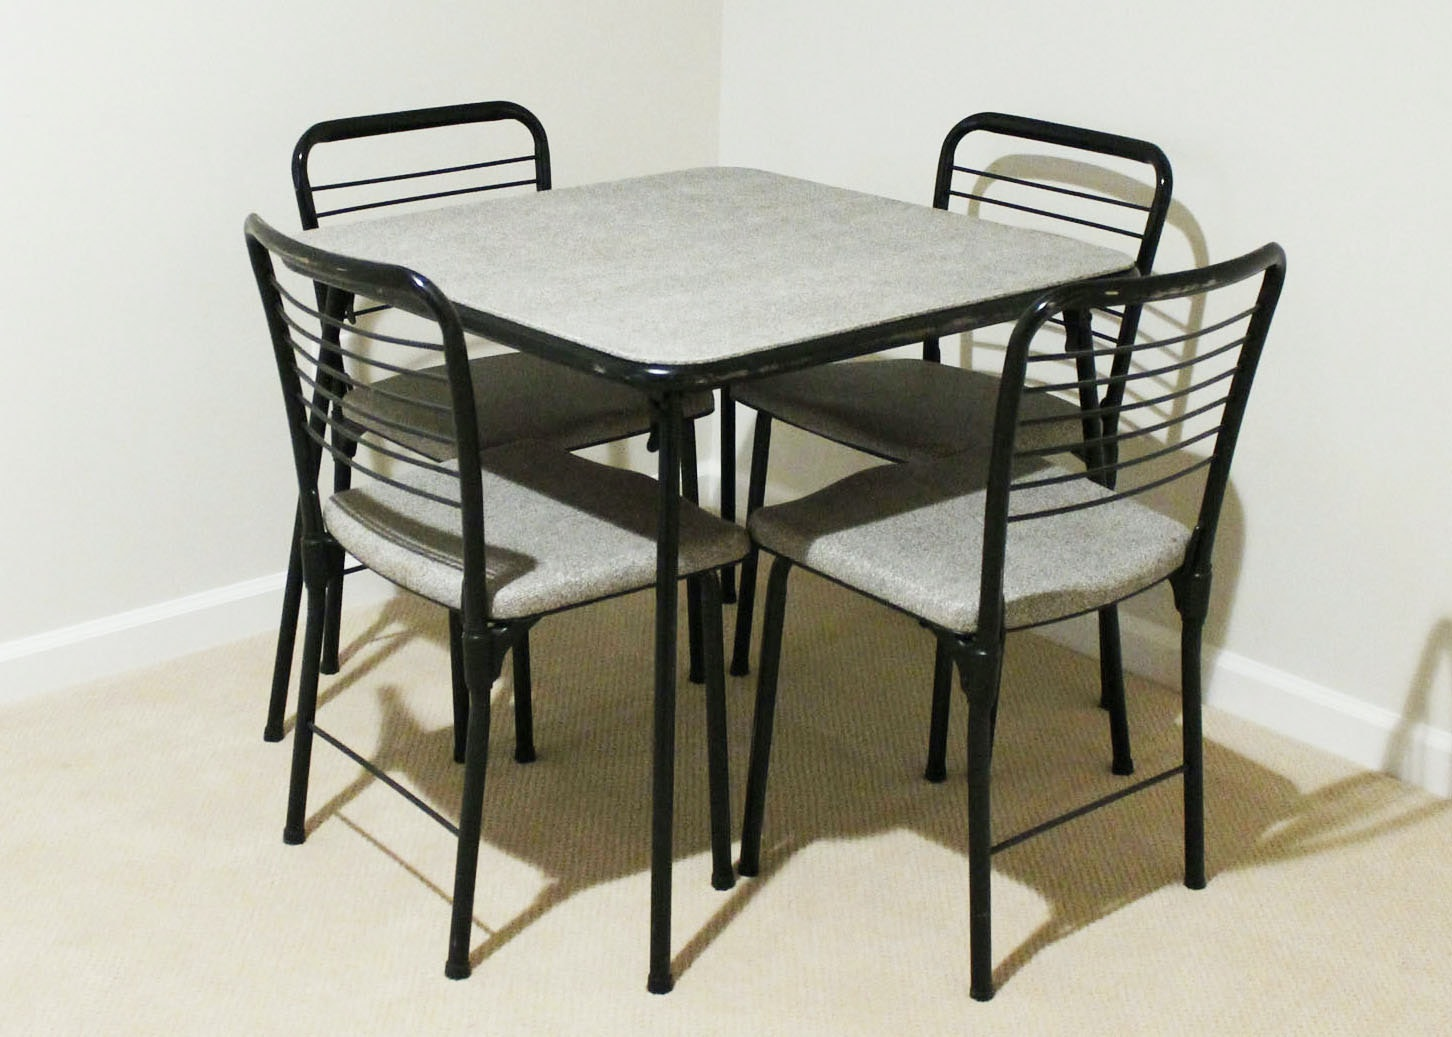 Vintage Cosco Fashion Fold Mid Century Card Table and Chairs EBTH